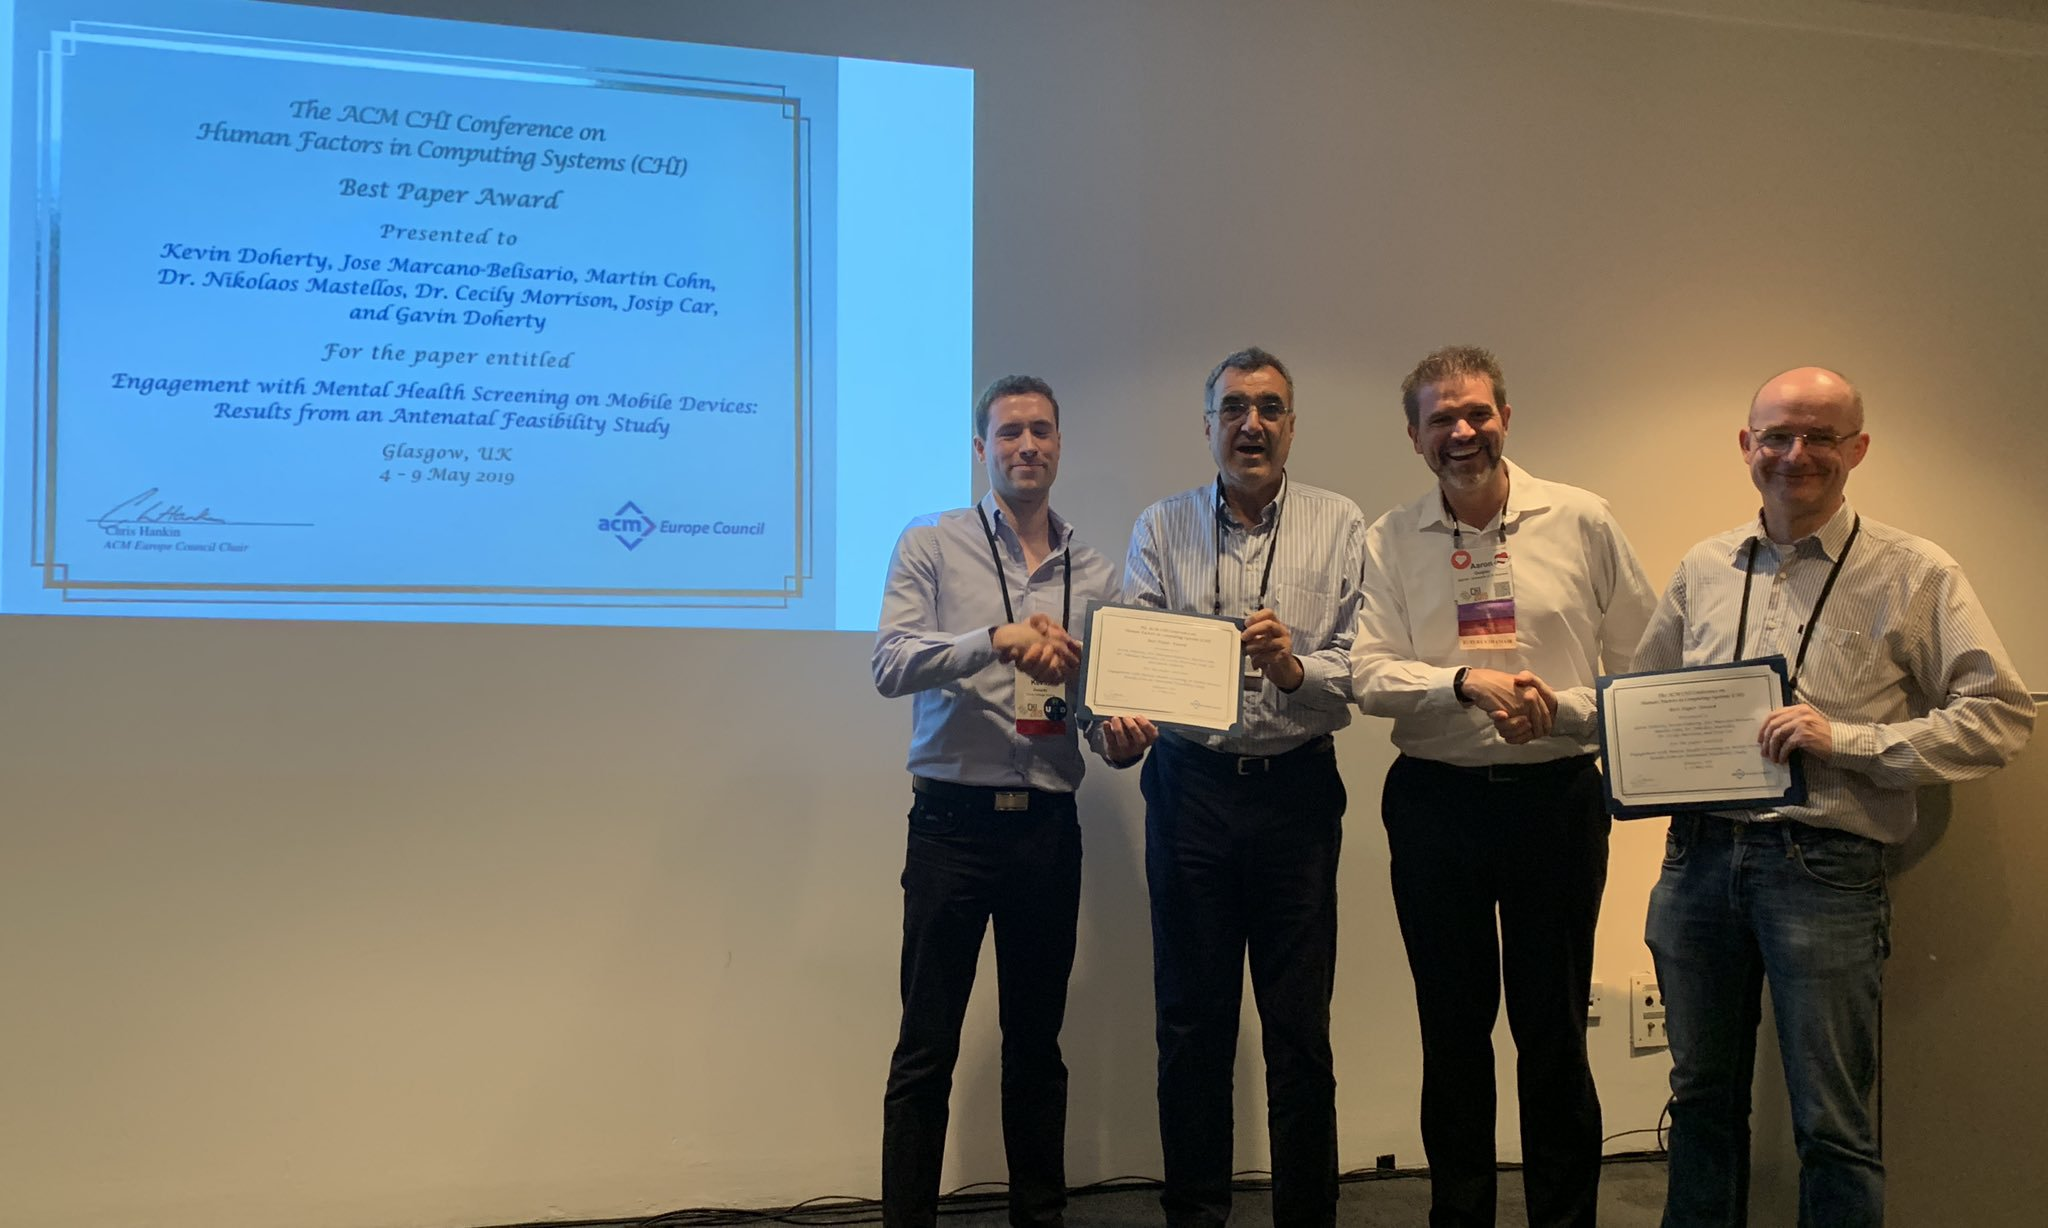 ACM Europe Council Award at CHI 2019